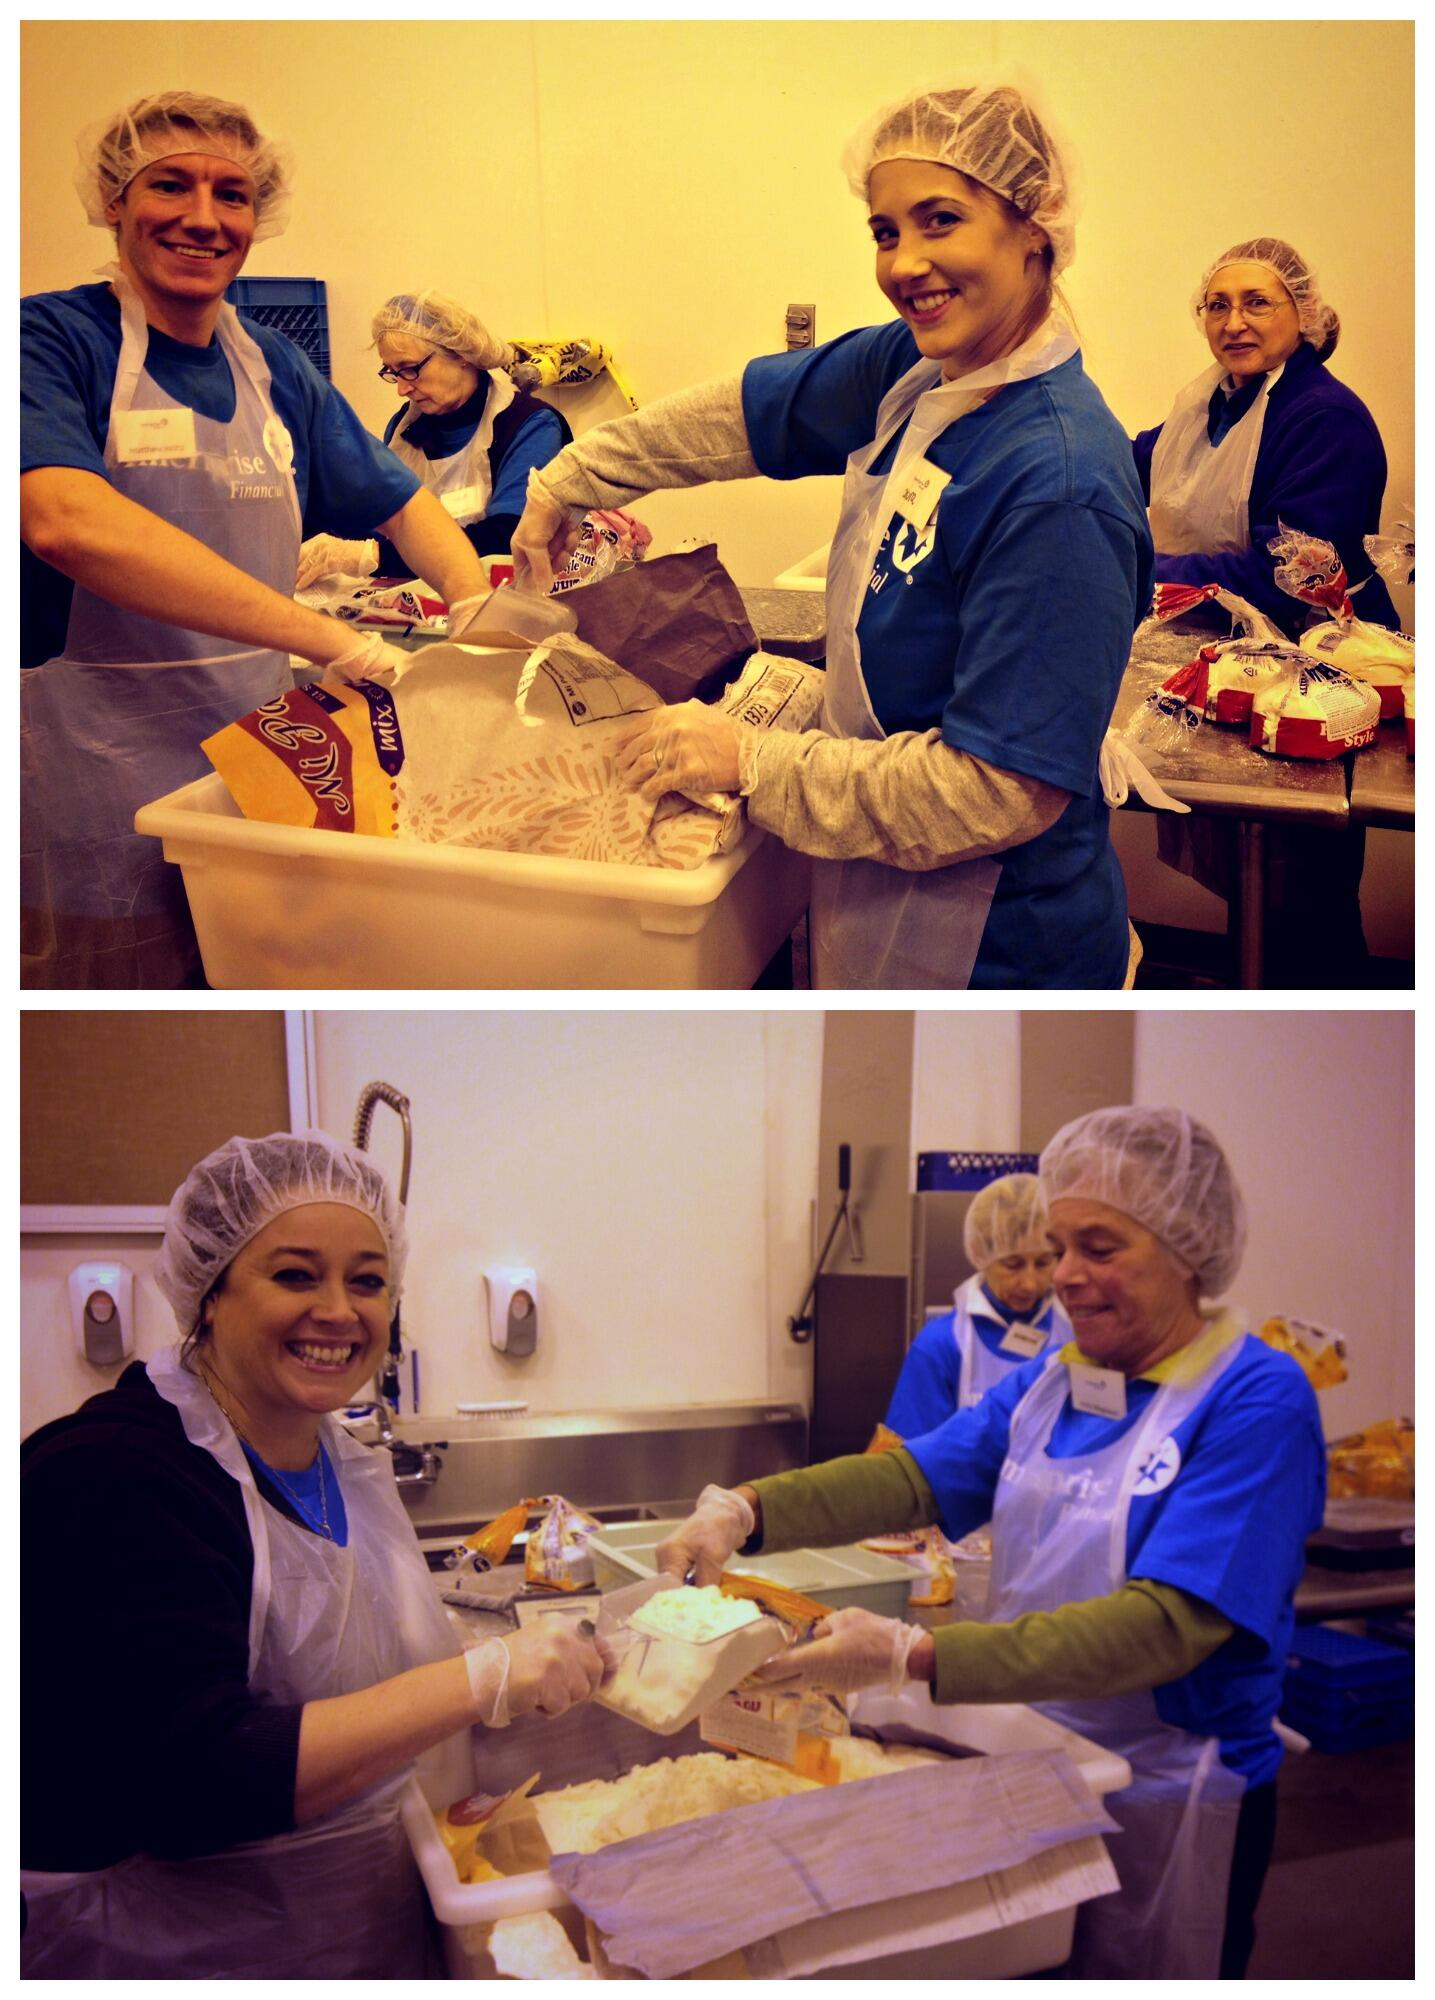 MT @FoodLifeline: Big thanks to the #AmeripriseVolunteers in our warehouse today, helping our hungry neighbors! http://t.co/DDaJ1alGDD